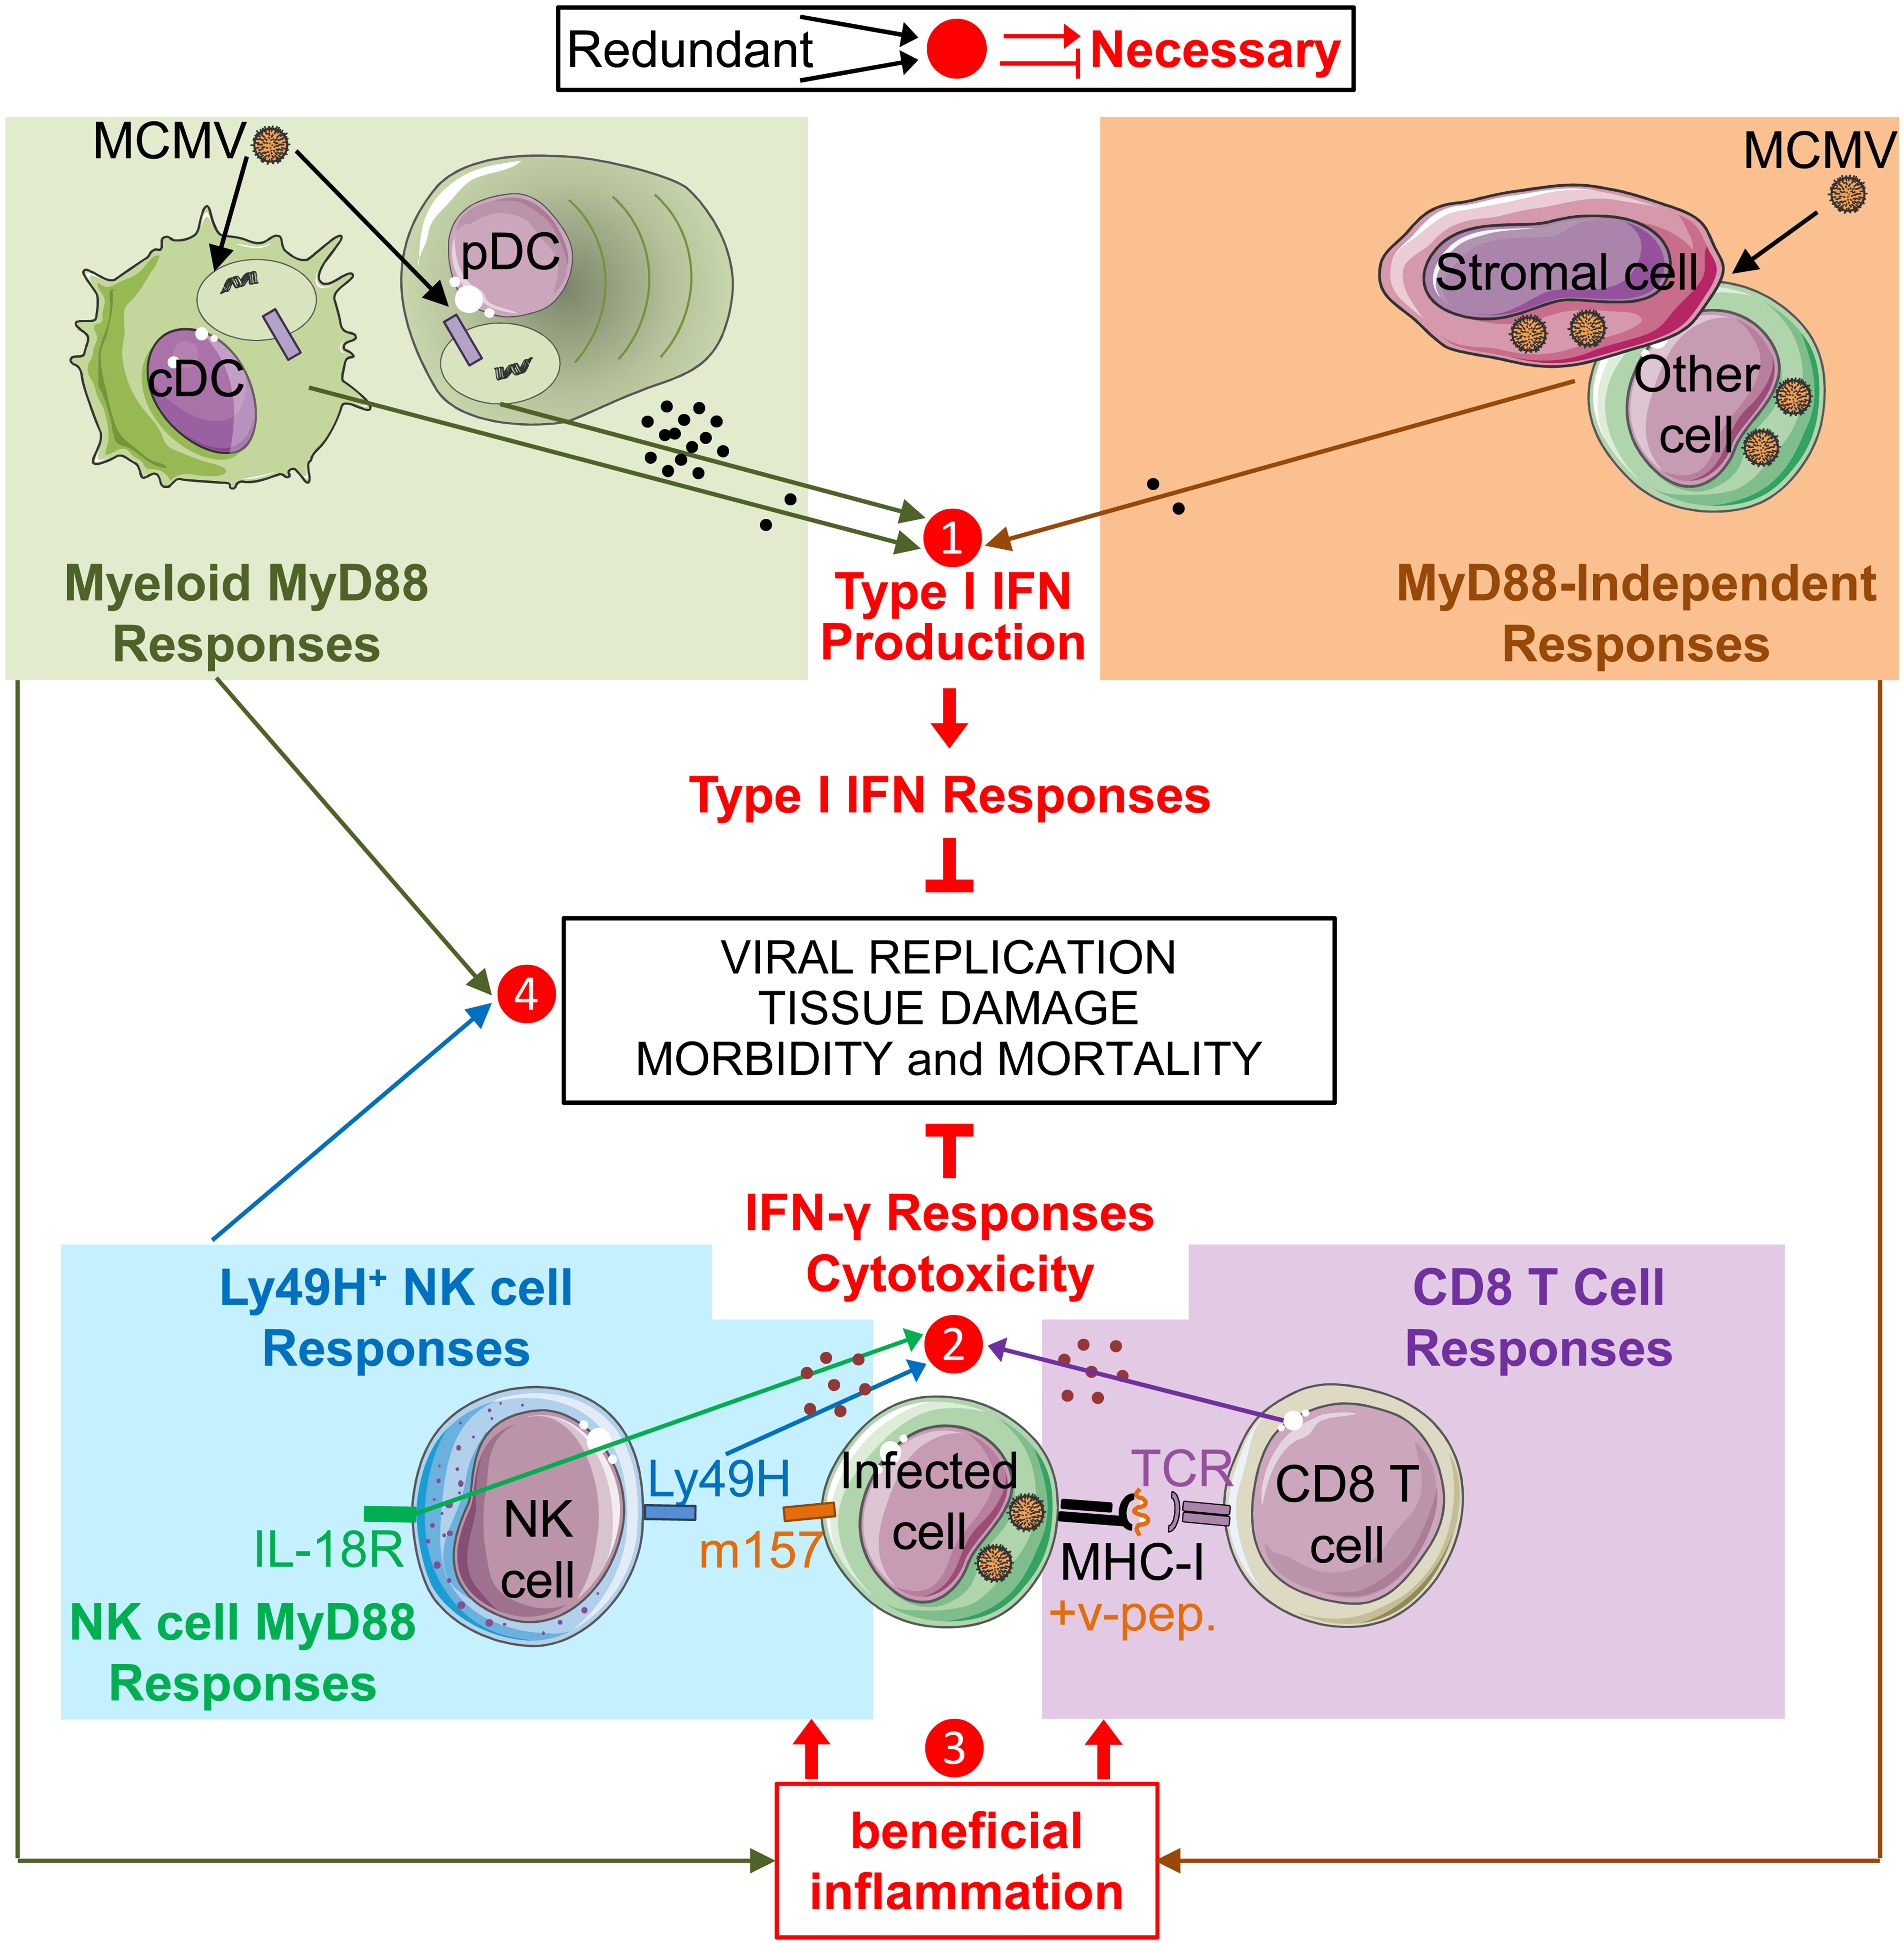 Model of redundancies and complementarities between molecular sensors and cell types for mounting the IFN-I, IFN-γ and cytotoxic cellular immune responses which are necessary for control of MCMV infection.